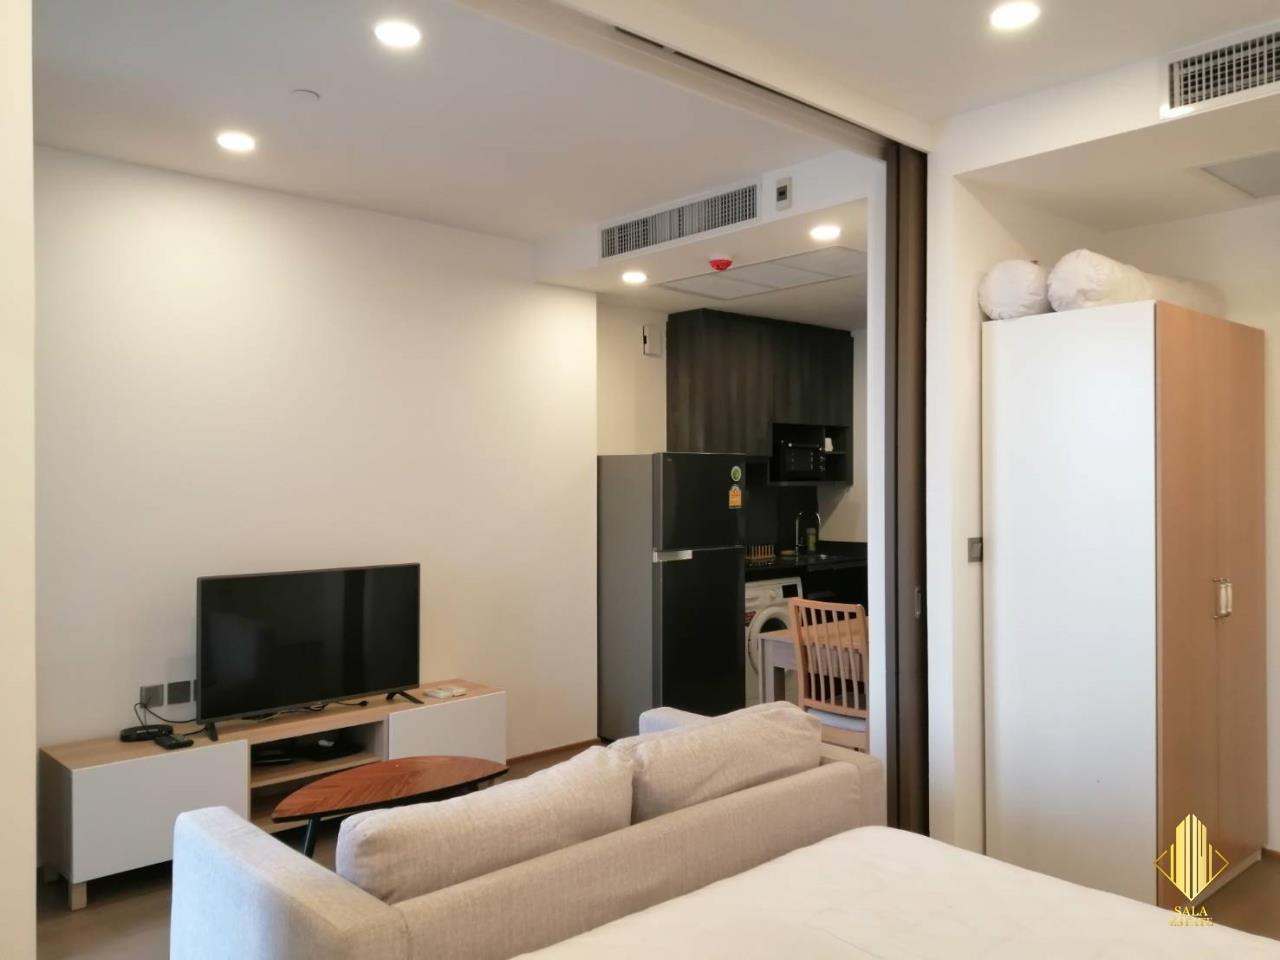 SALA ESTATE Agency's ( FOR RENT ) ASHTON CHULA SILOM – MRT SAMYAN, 40 SQM 1 BEDROOM 1 BEDROOM, FULLY FURNISHED, HIGH FLOOR 6